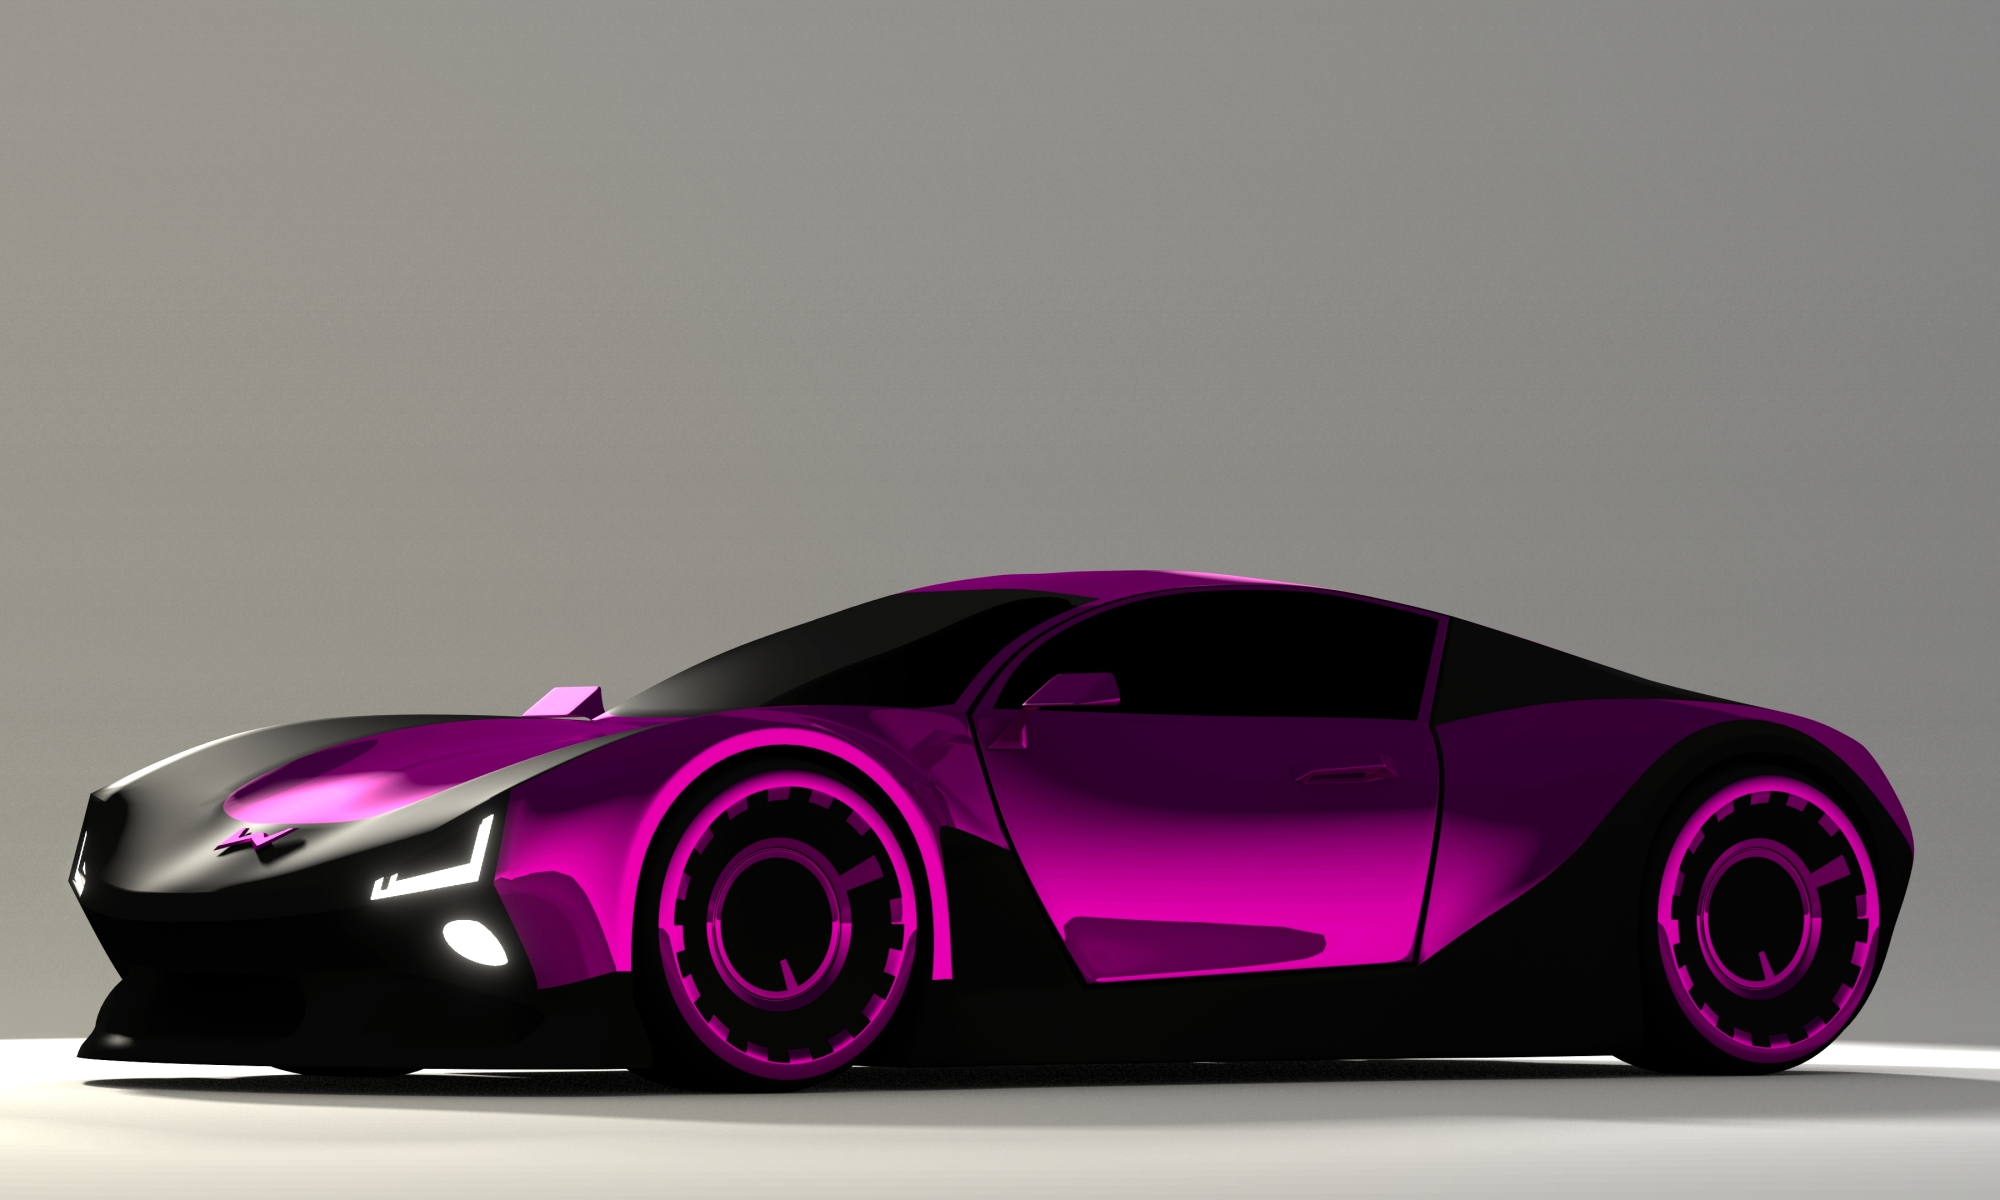 Concept Car Final rendering